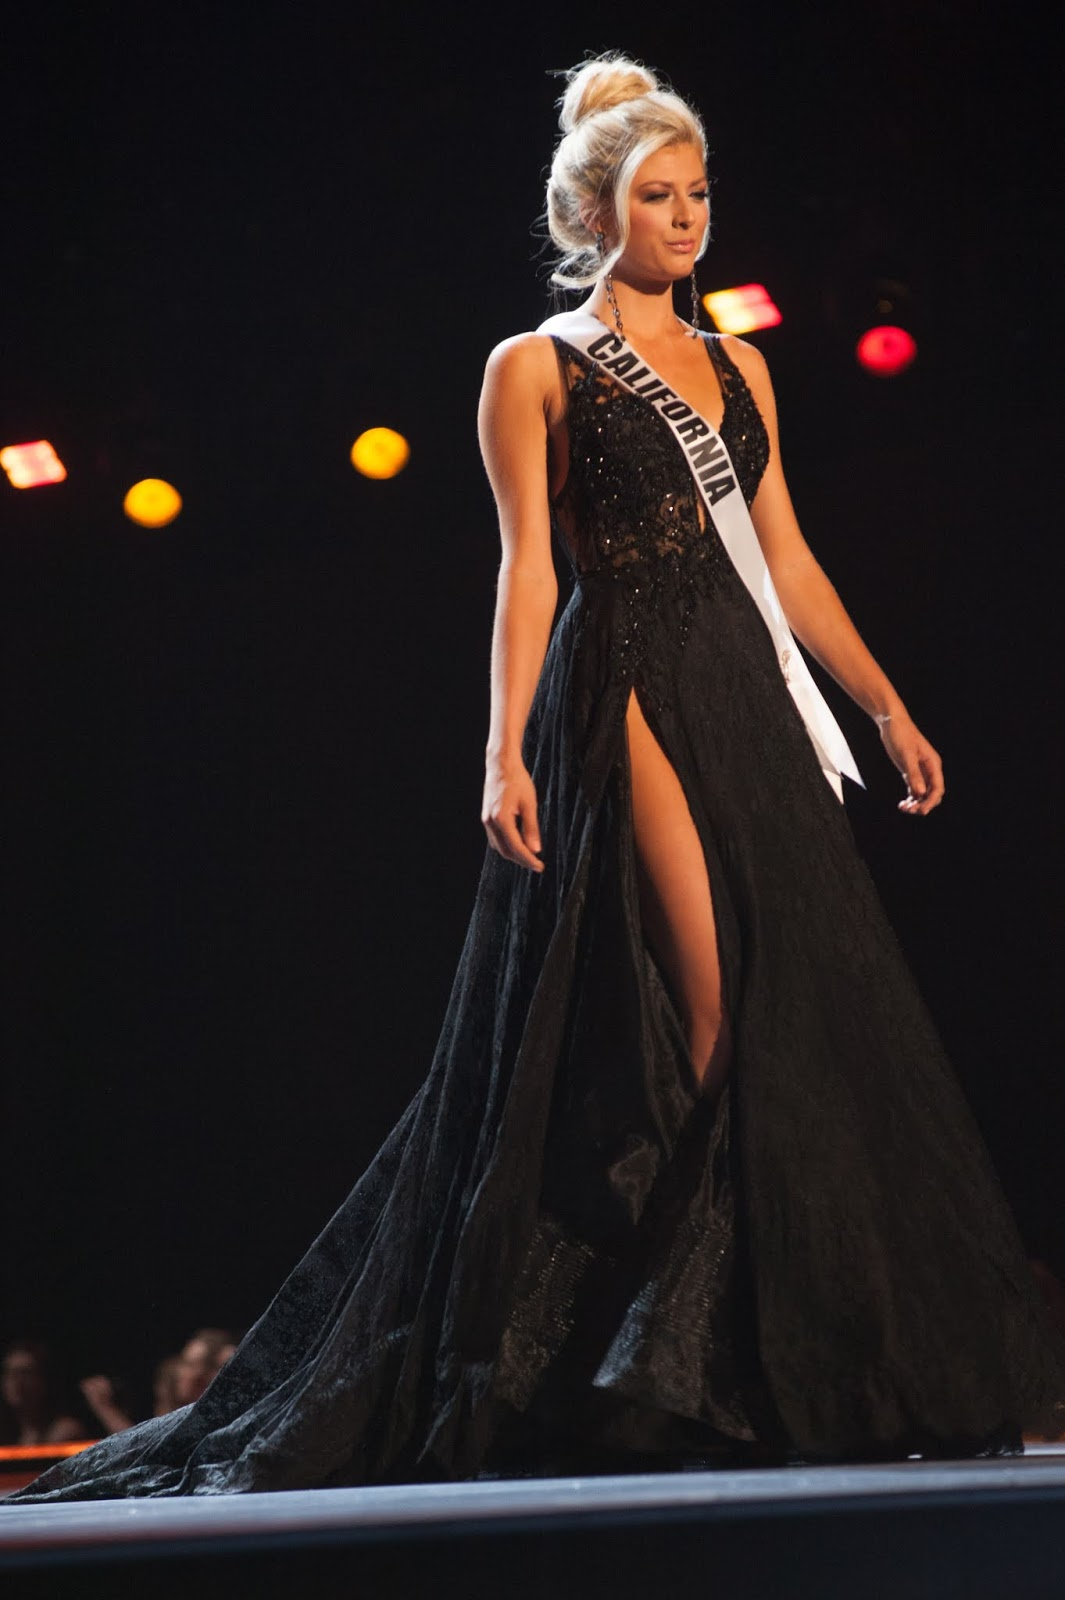 Miss Texas - Logan Lester. Miss Texas is a shimmering golden goddess! She  wore a sheer, body fitting, bustier and unconventional gold gown by New  York-based ...